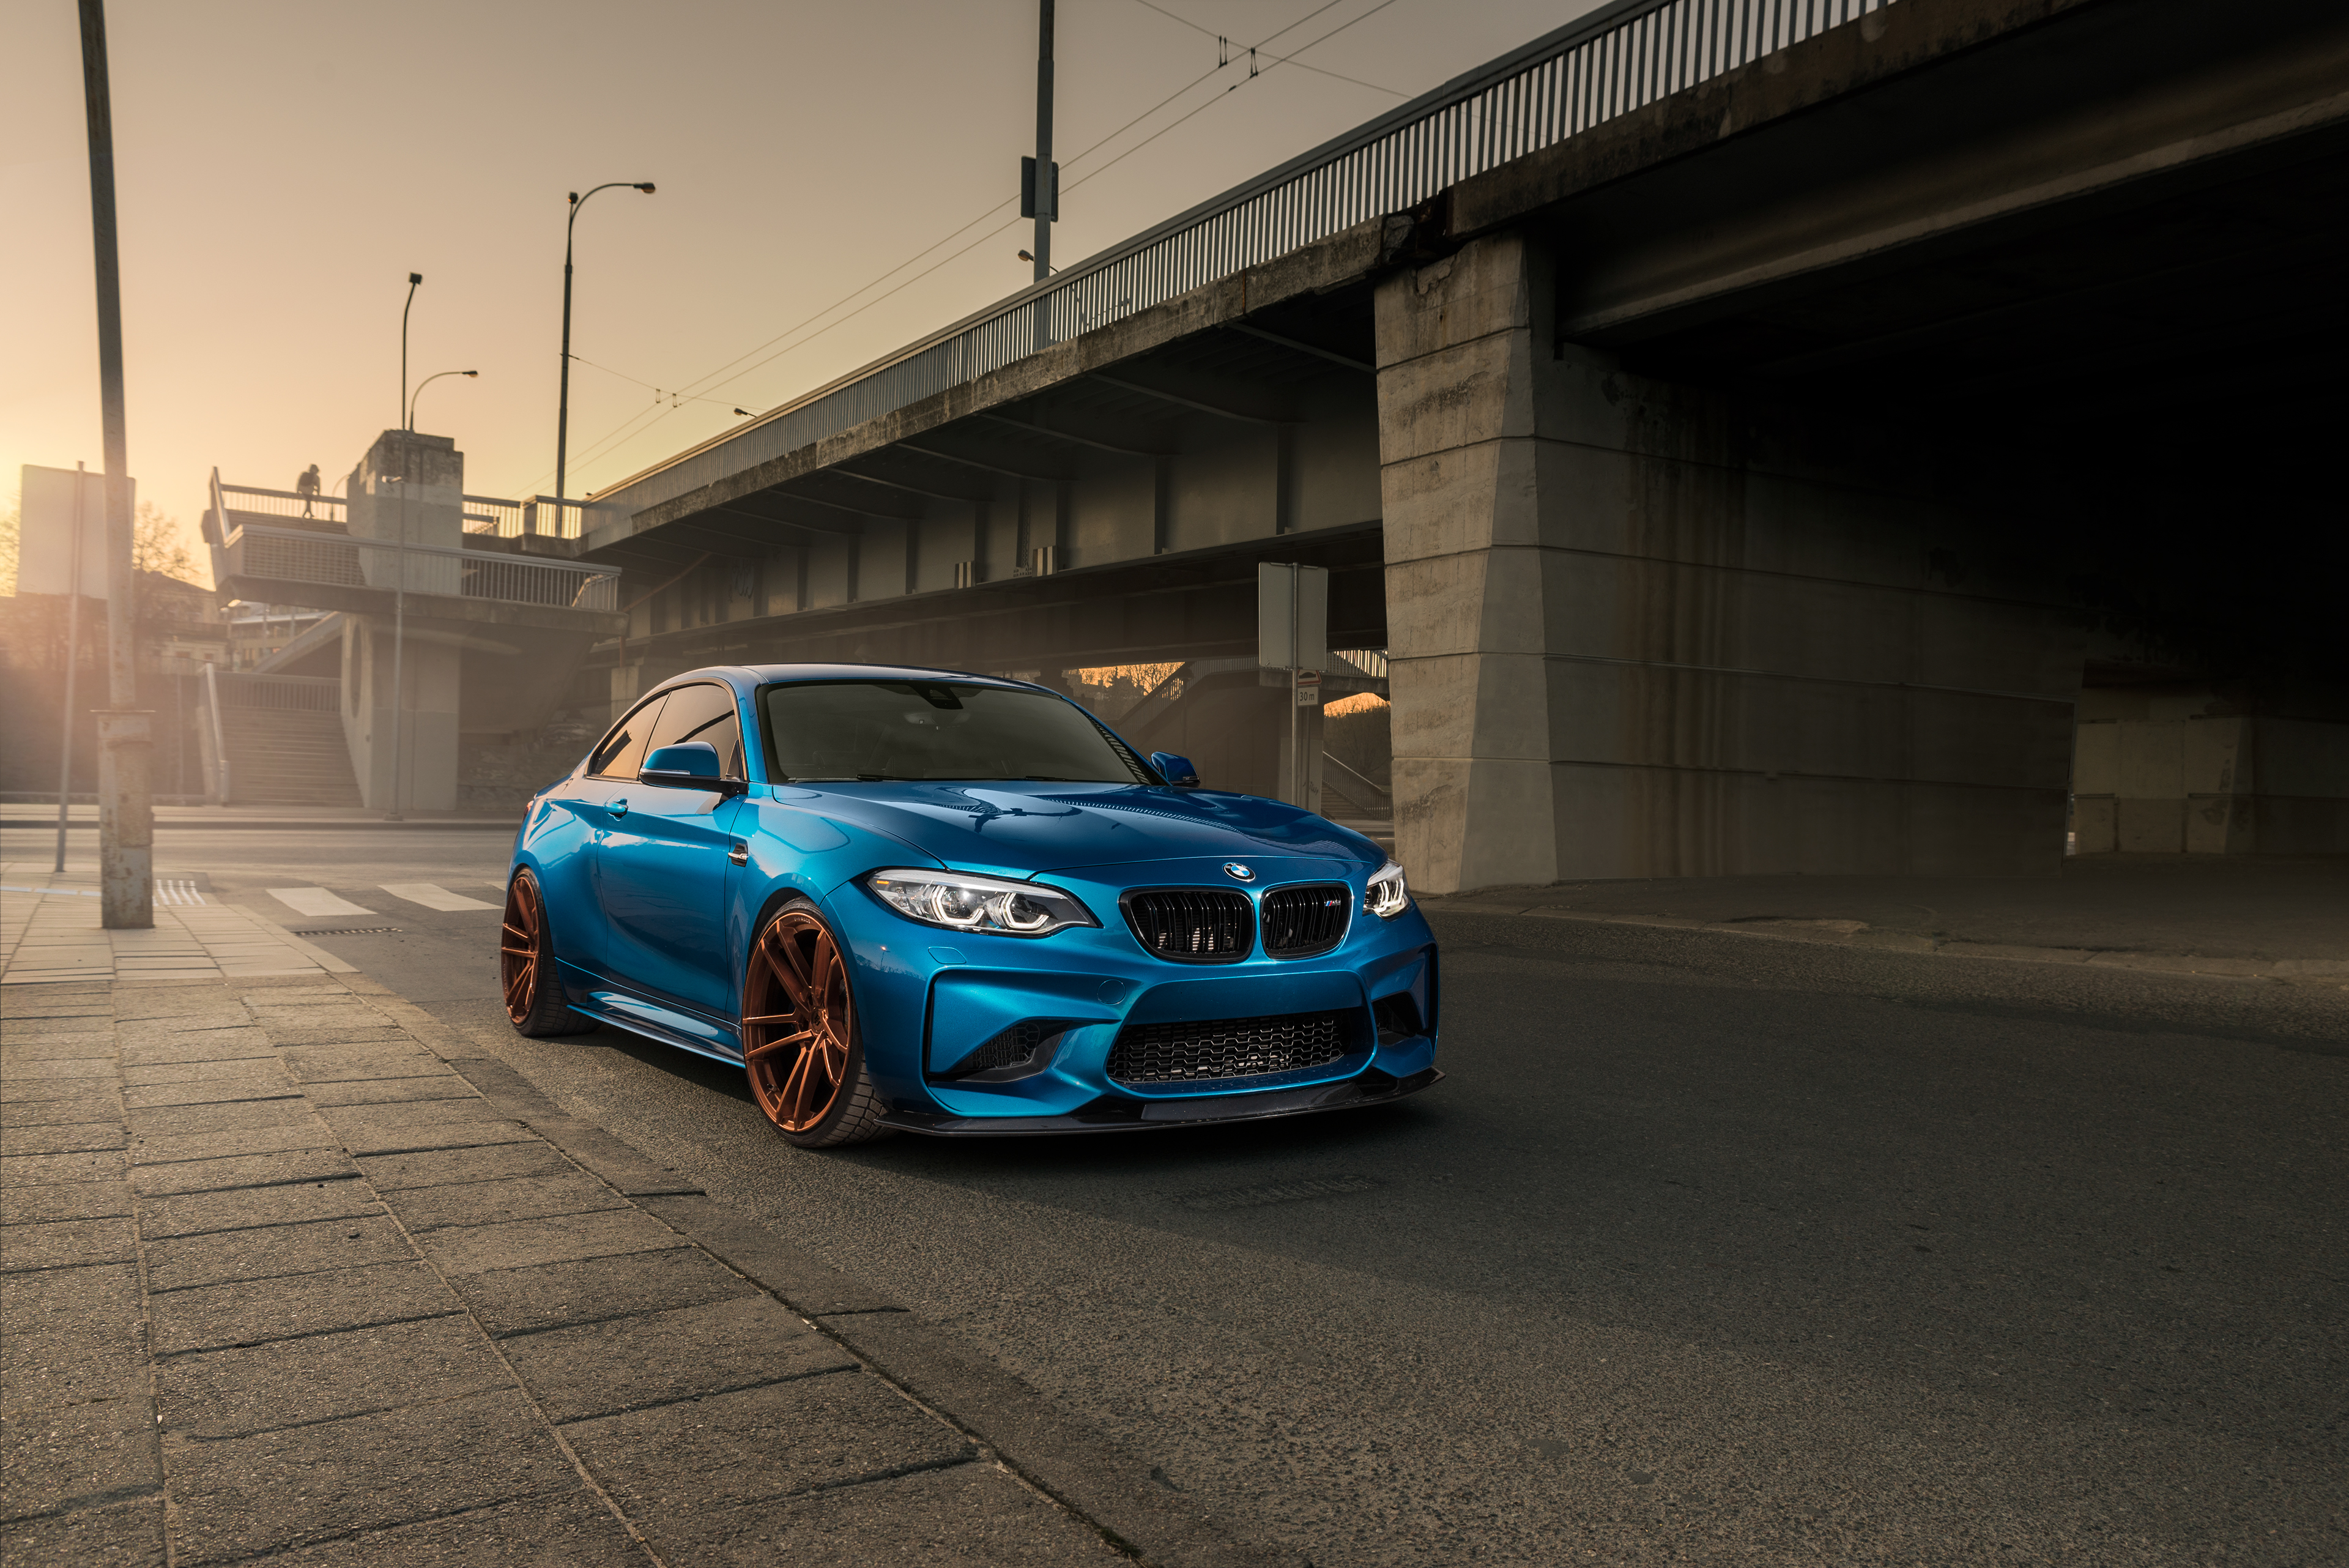 Bmw M2 4k, HD Cars, 4k Wallpapers, Images, Backgrounds ...